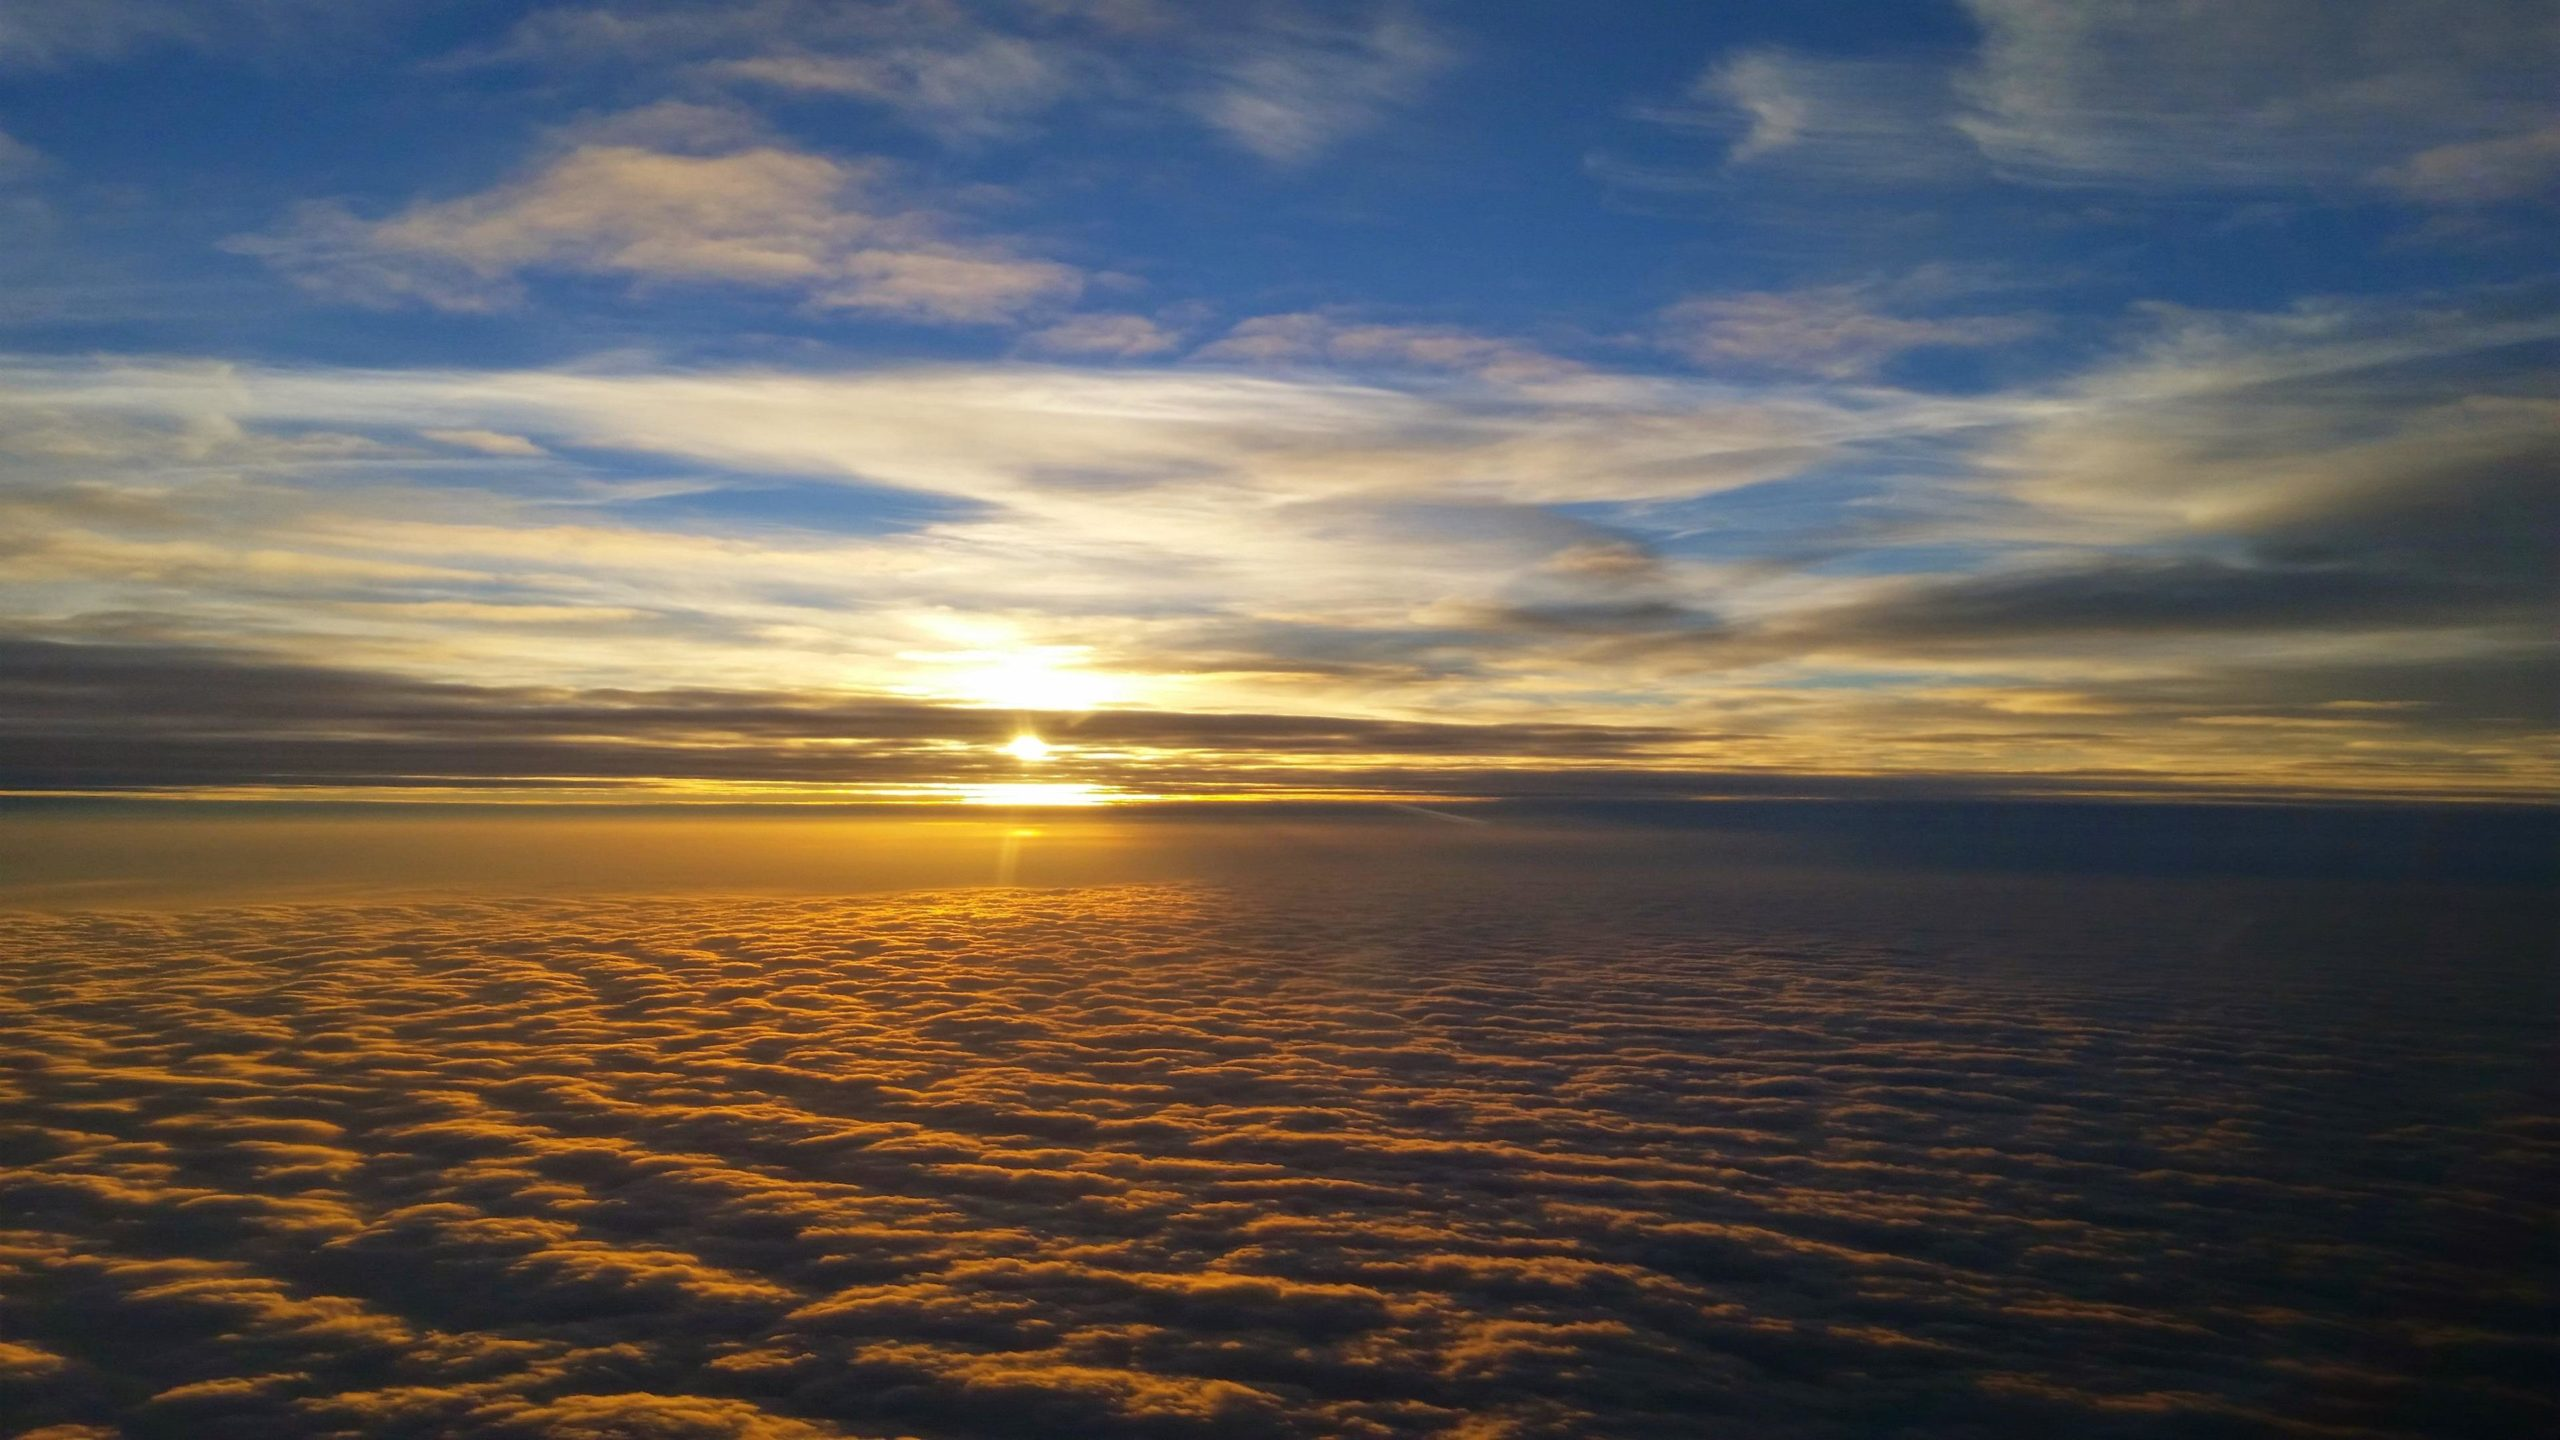 Download Another Sunset From Above Wallpaper